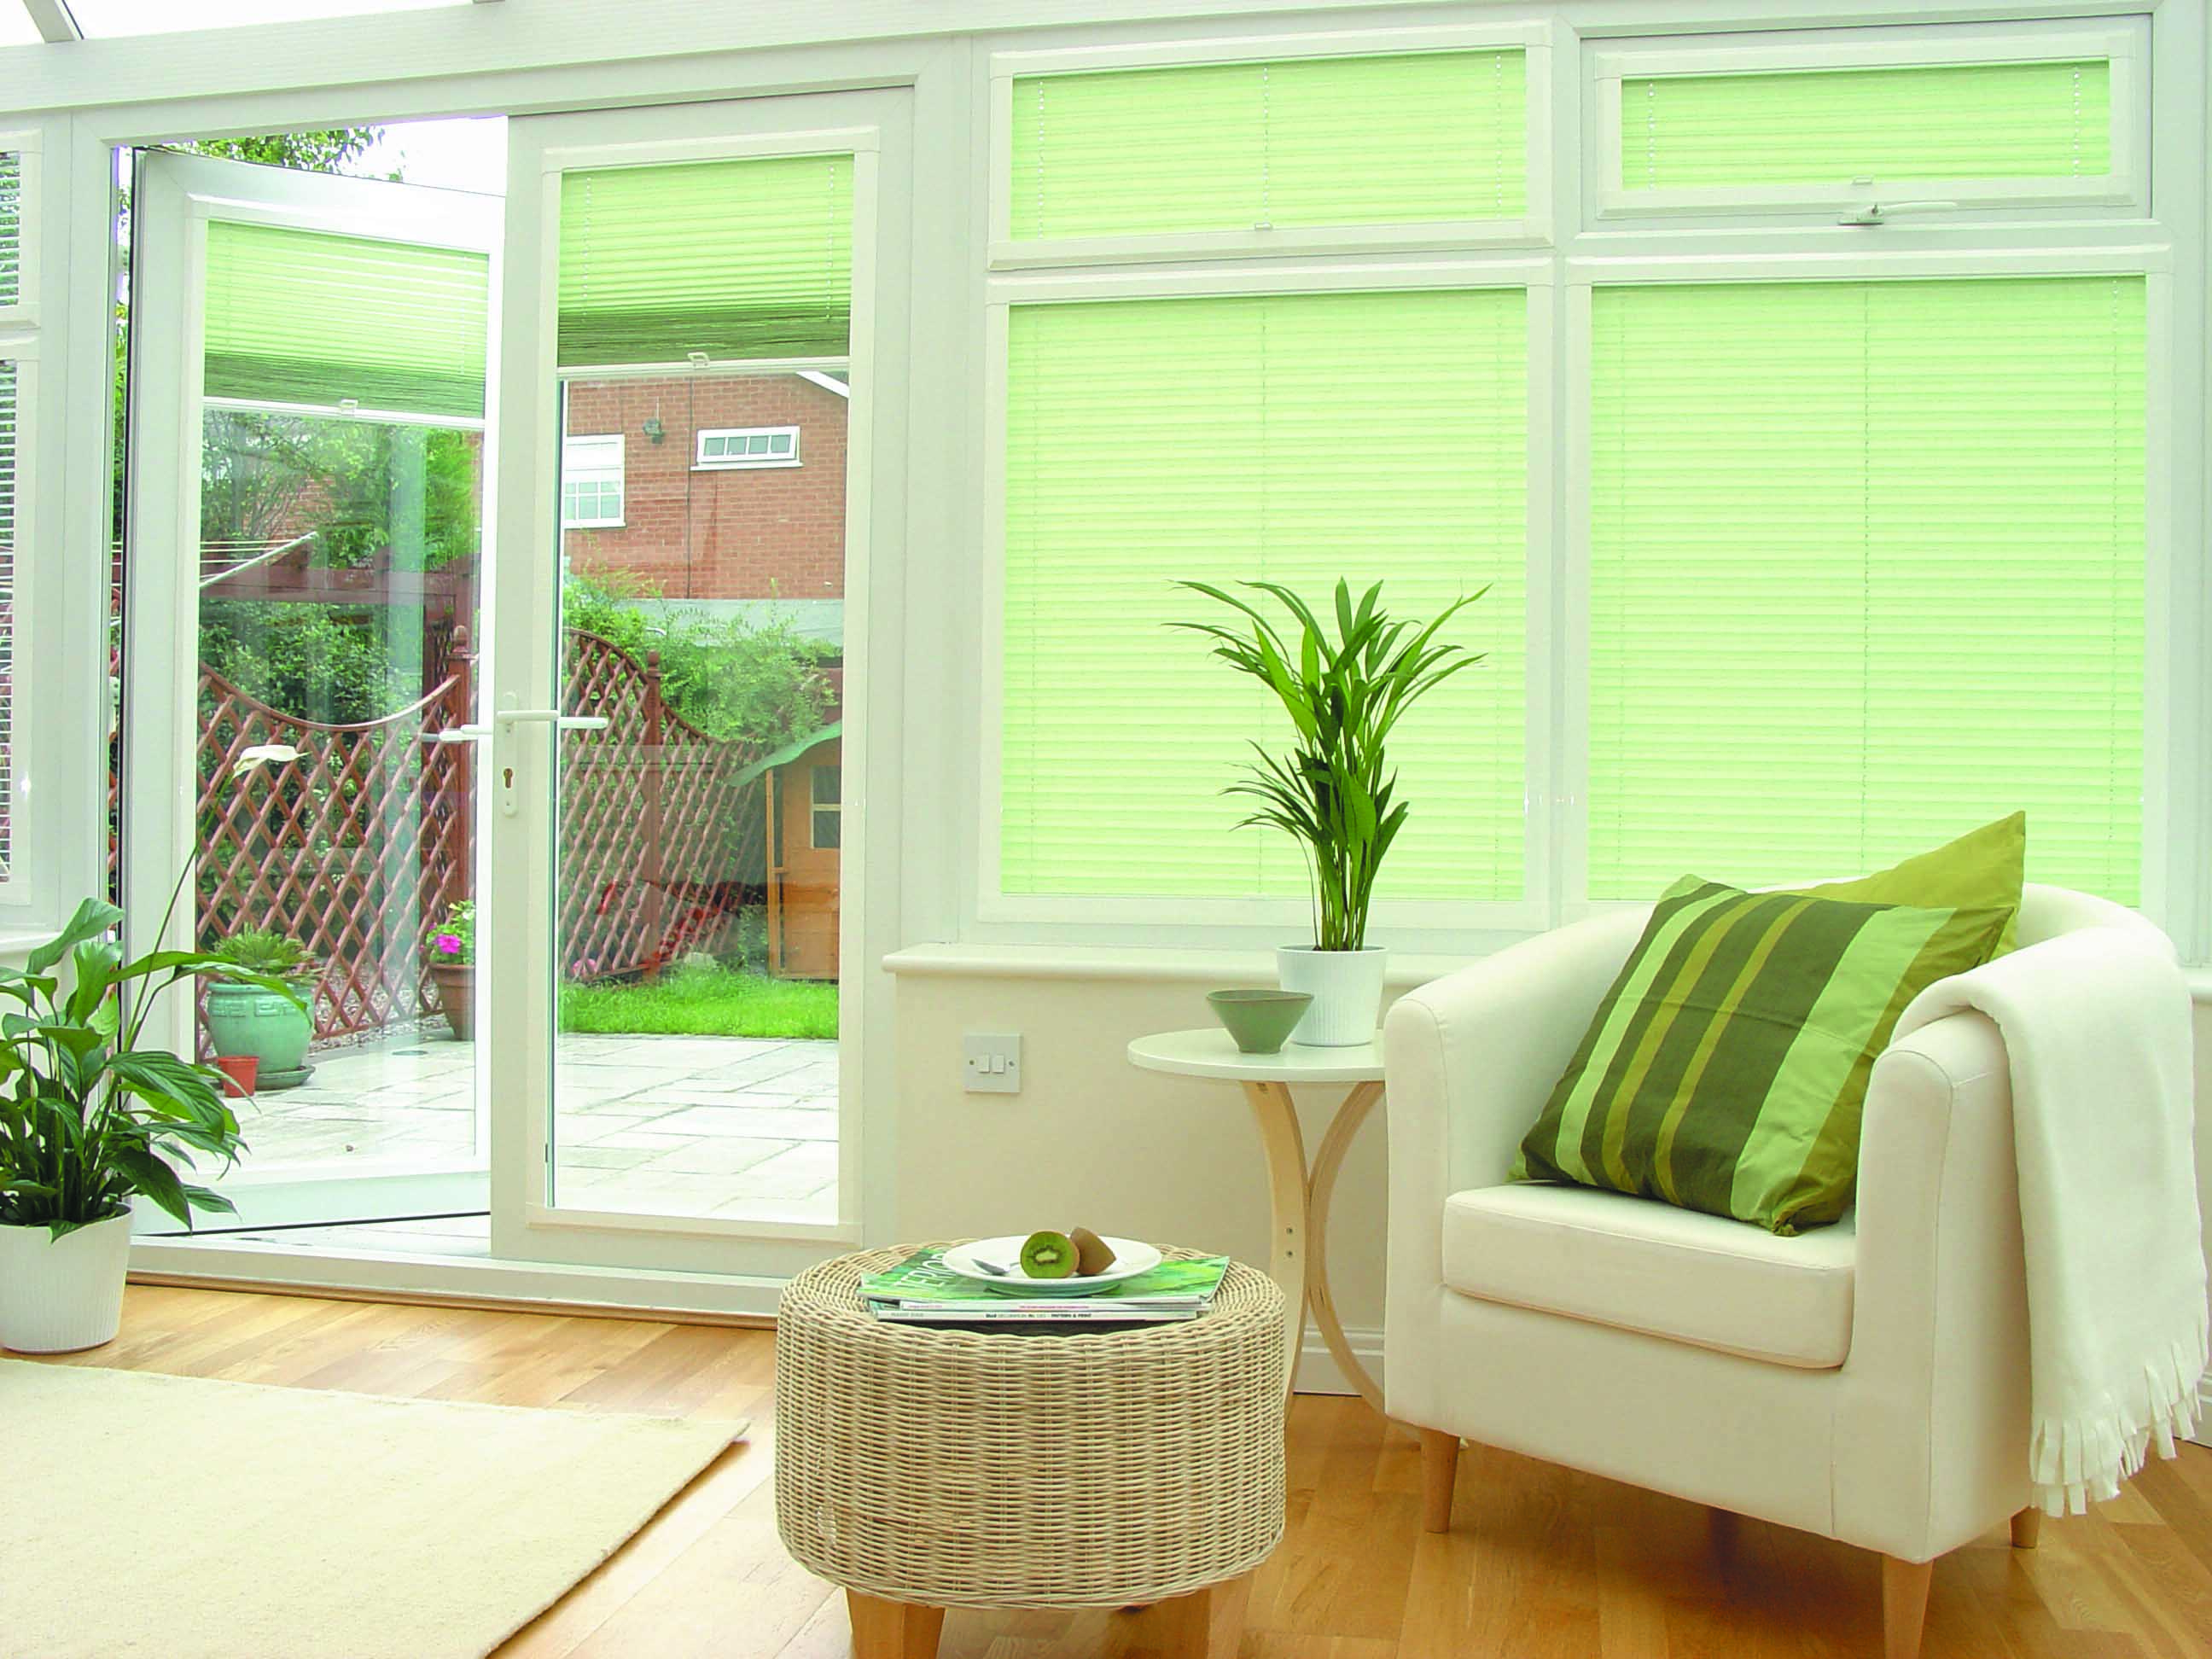 Perfect Fit Blinds for UPVC windows